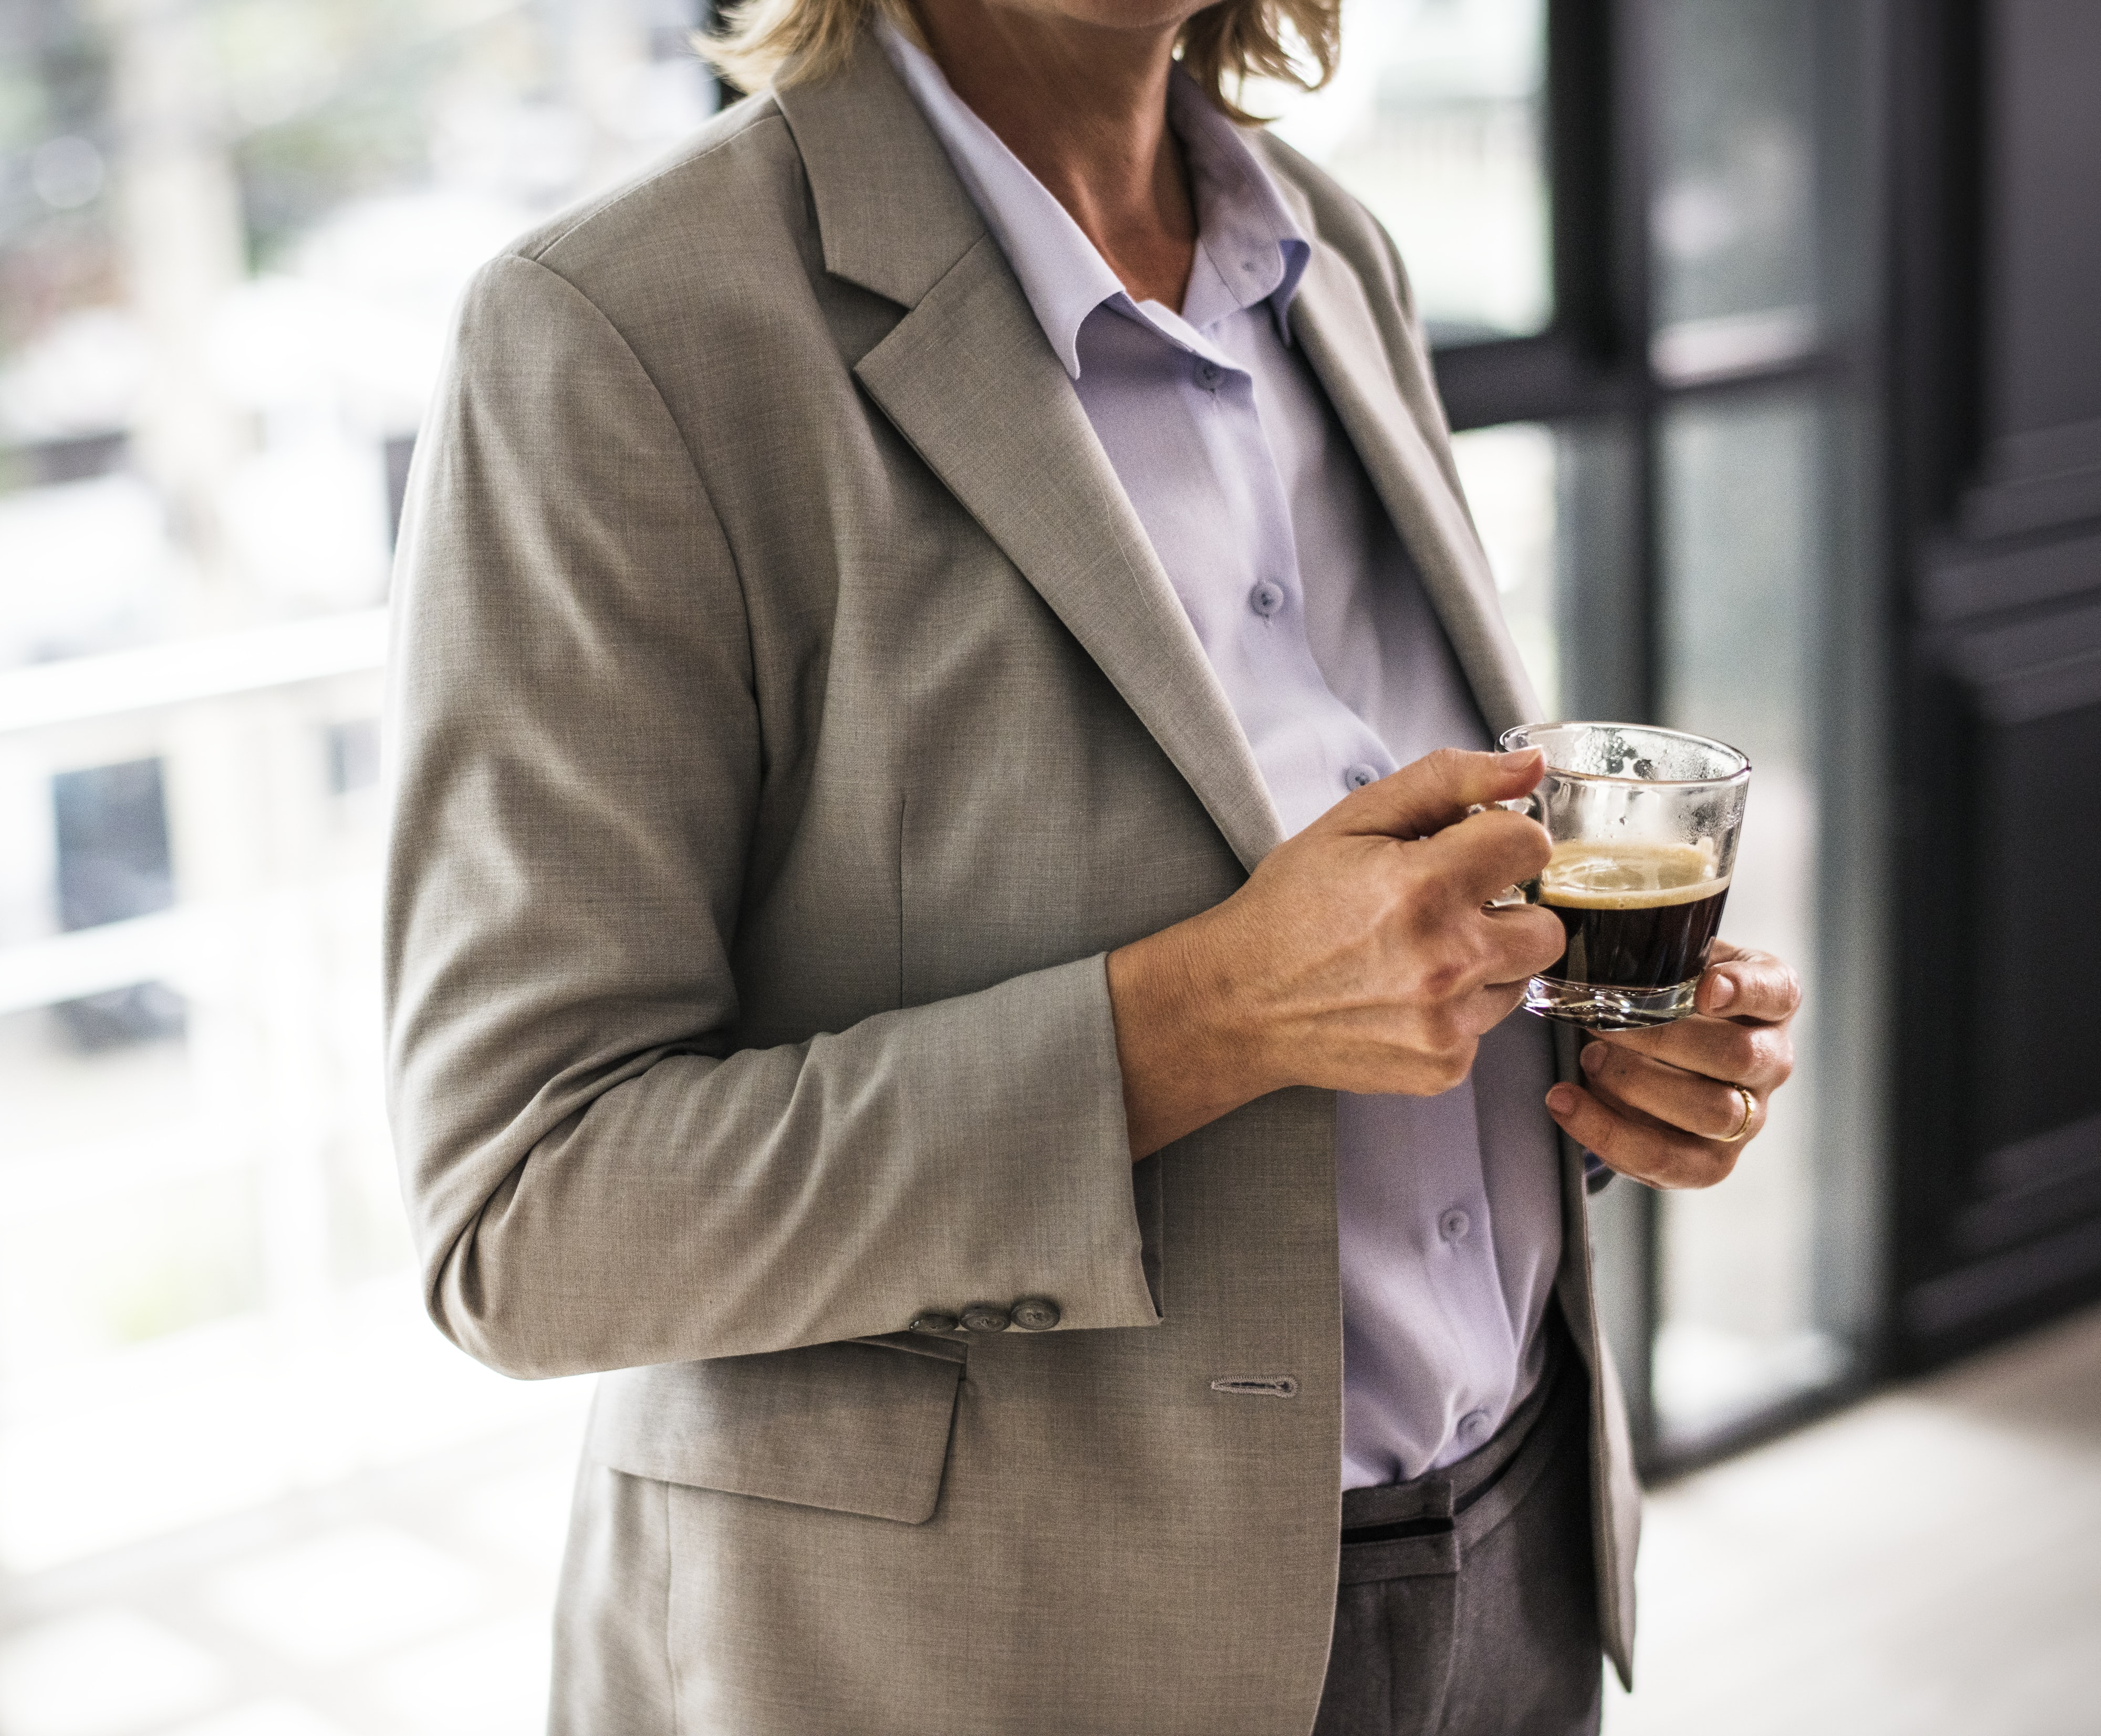 person wearing brown suit jacket holding cup of coffee